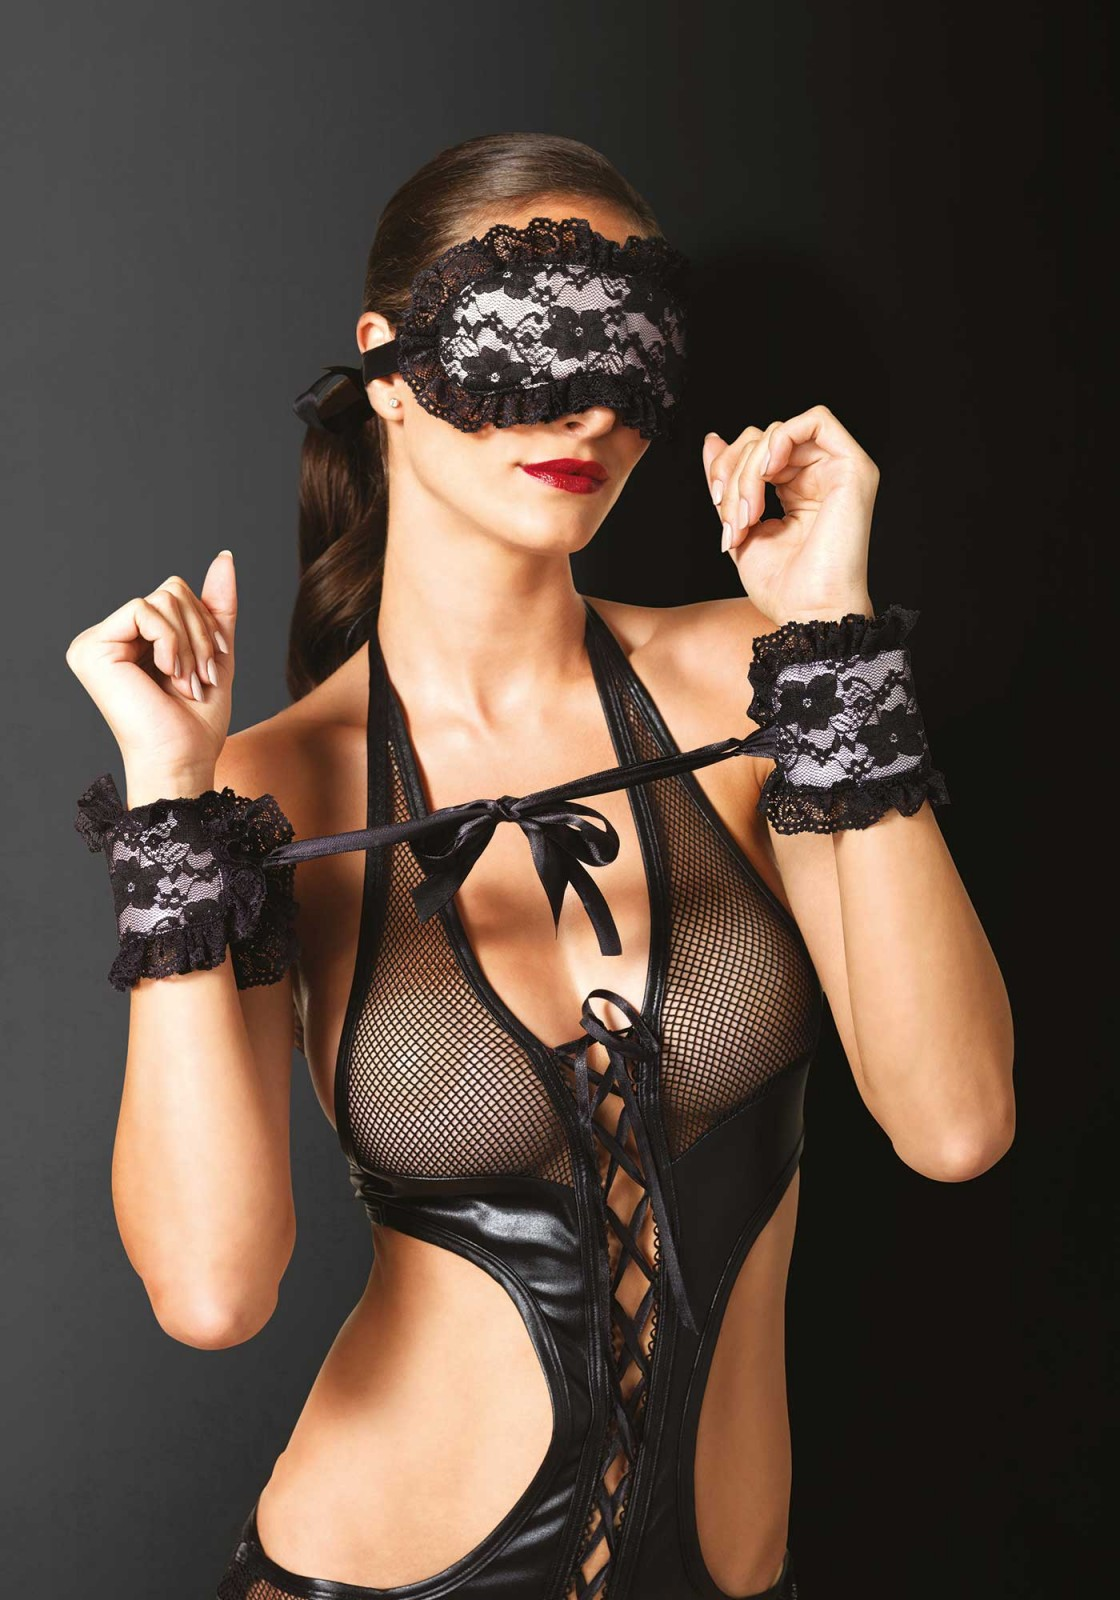 In for a little roleplay? These floral lace satin lined soft cuffs and eye mask will set your fantasy free.